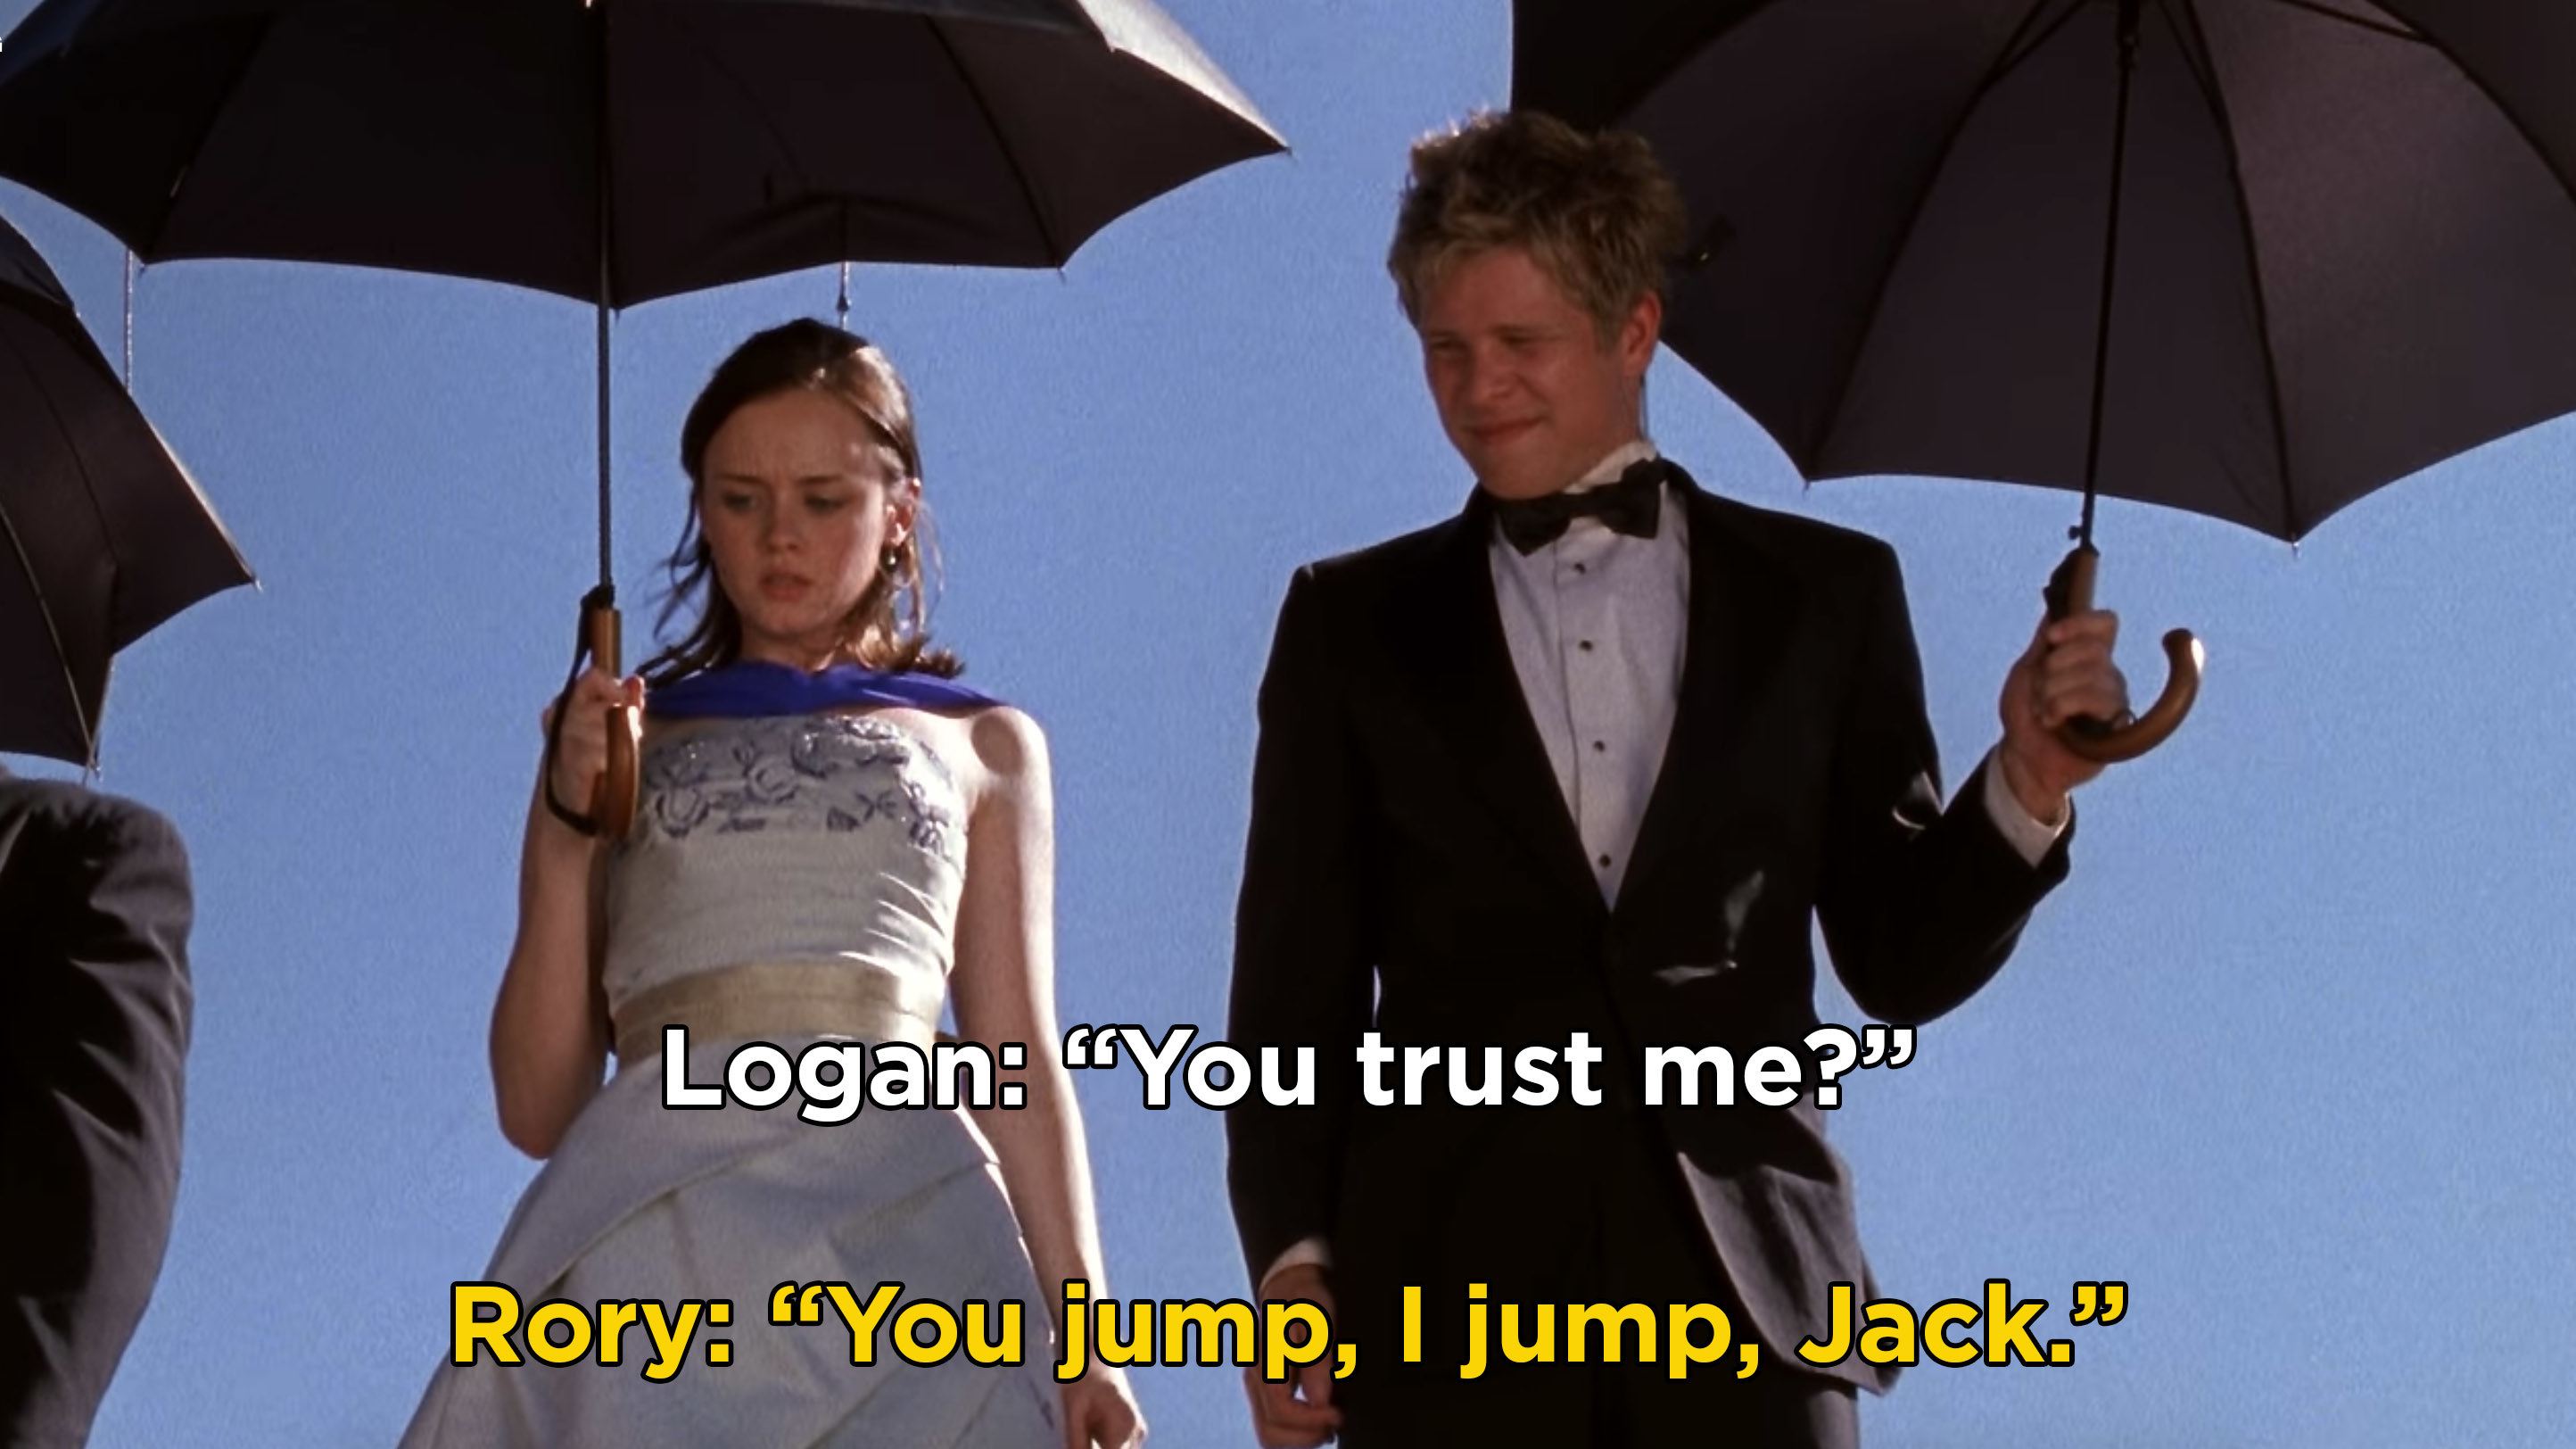 """Logan asking Rory, """"You trust me?"""" and Rory responding with, """"You jump, I jump, Jack"""""""